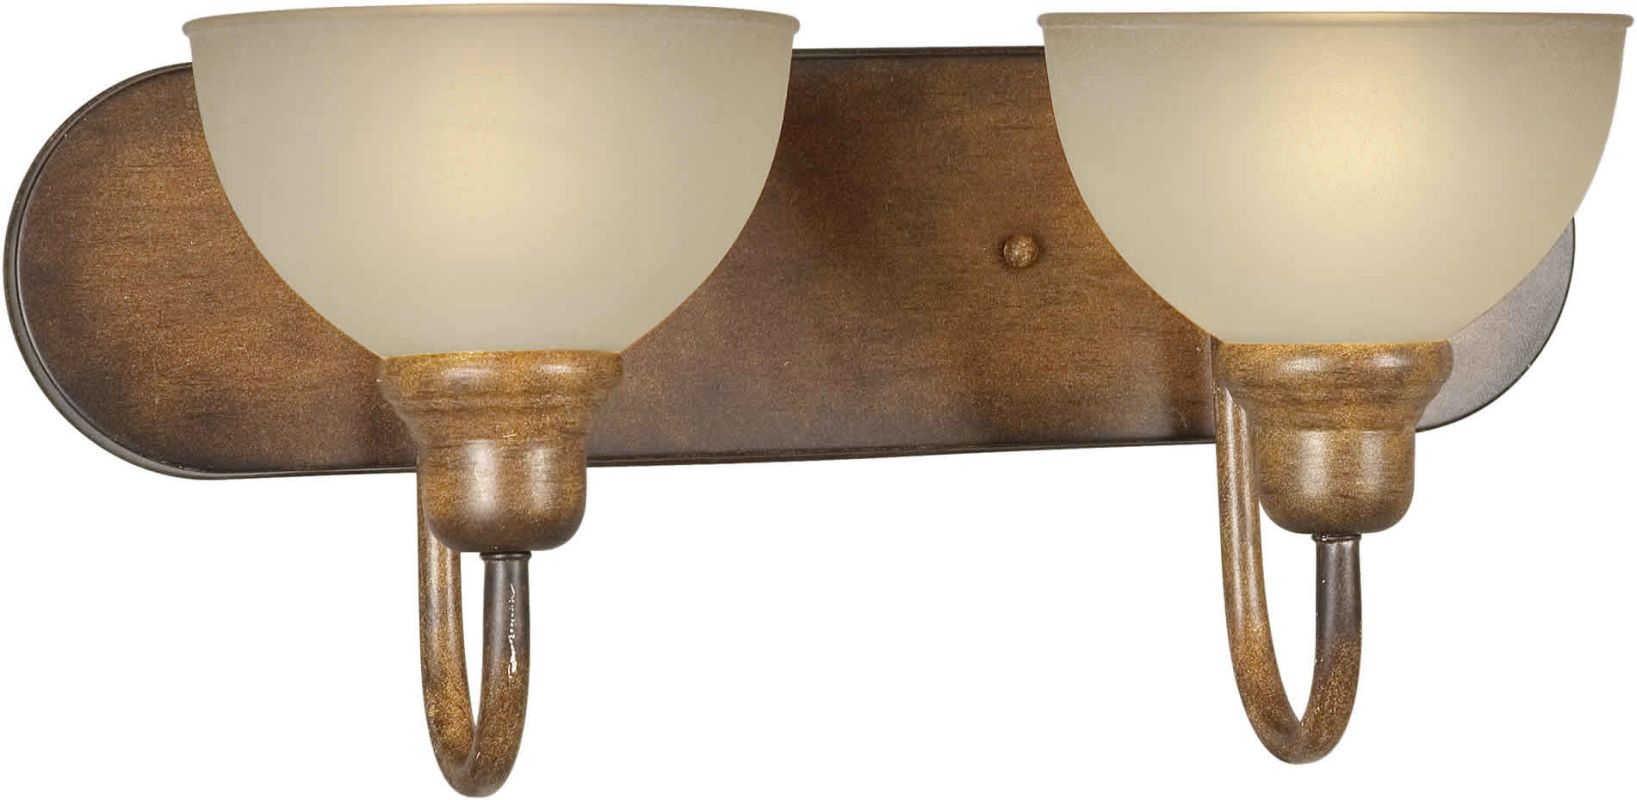 Forte Lighting 5166-02 18Wx8Hx8E Indoor Up Lighting Wall Sconce Rustic